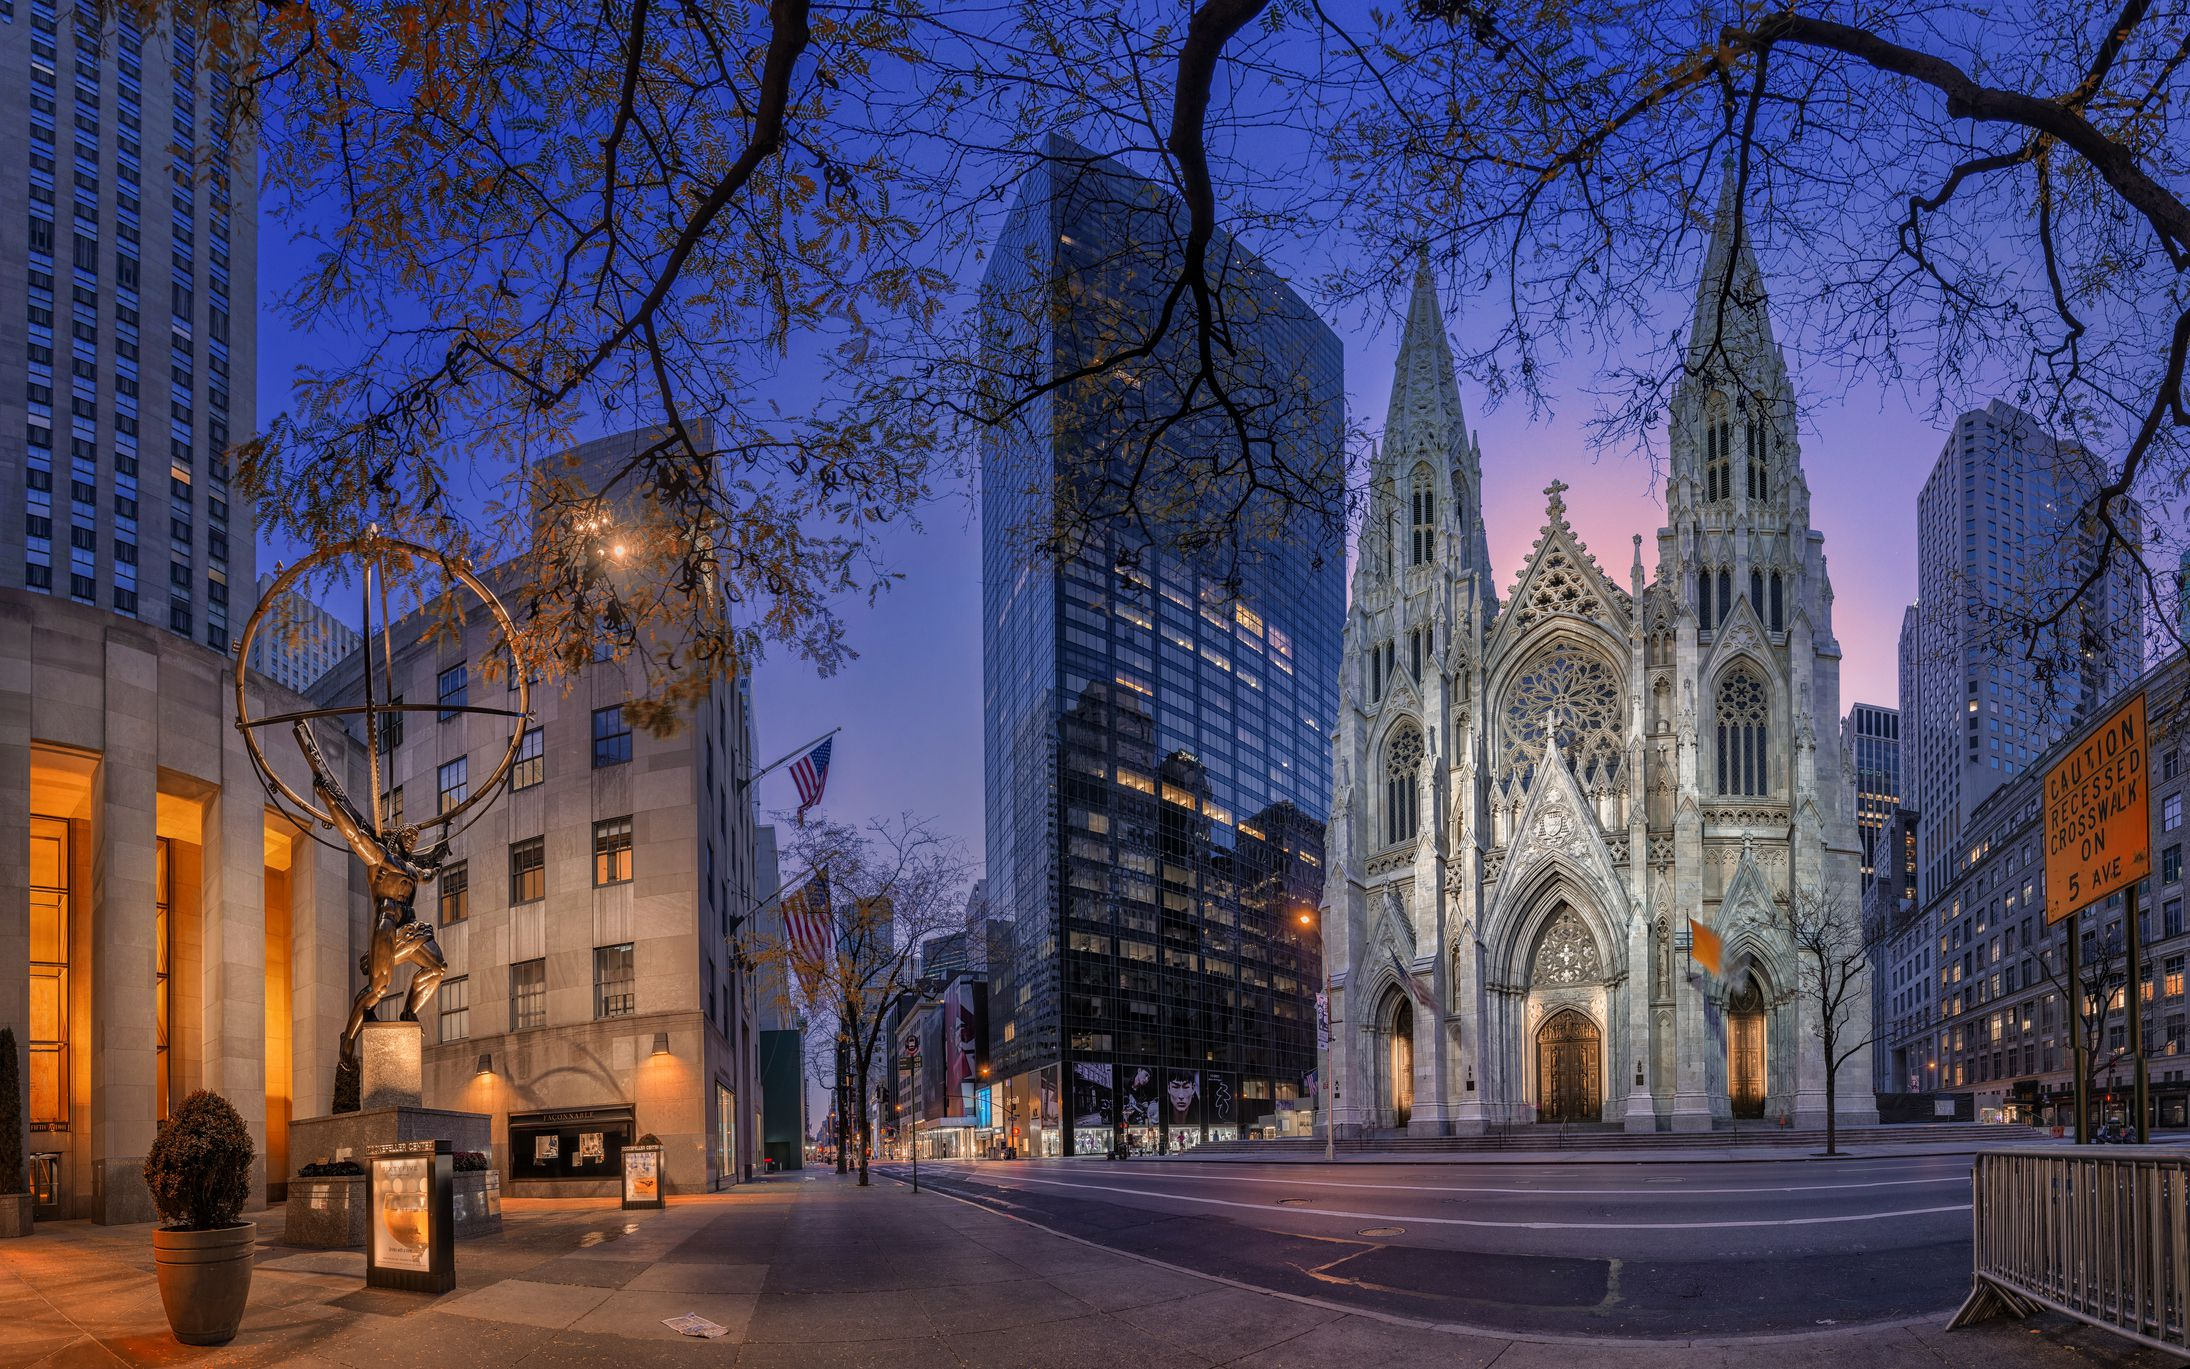 Atlas, St Patrick's Cathedral, New York City